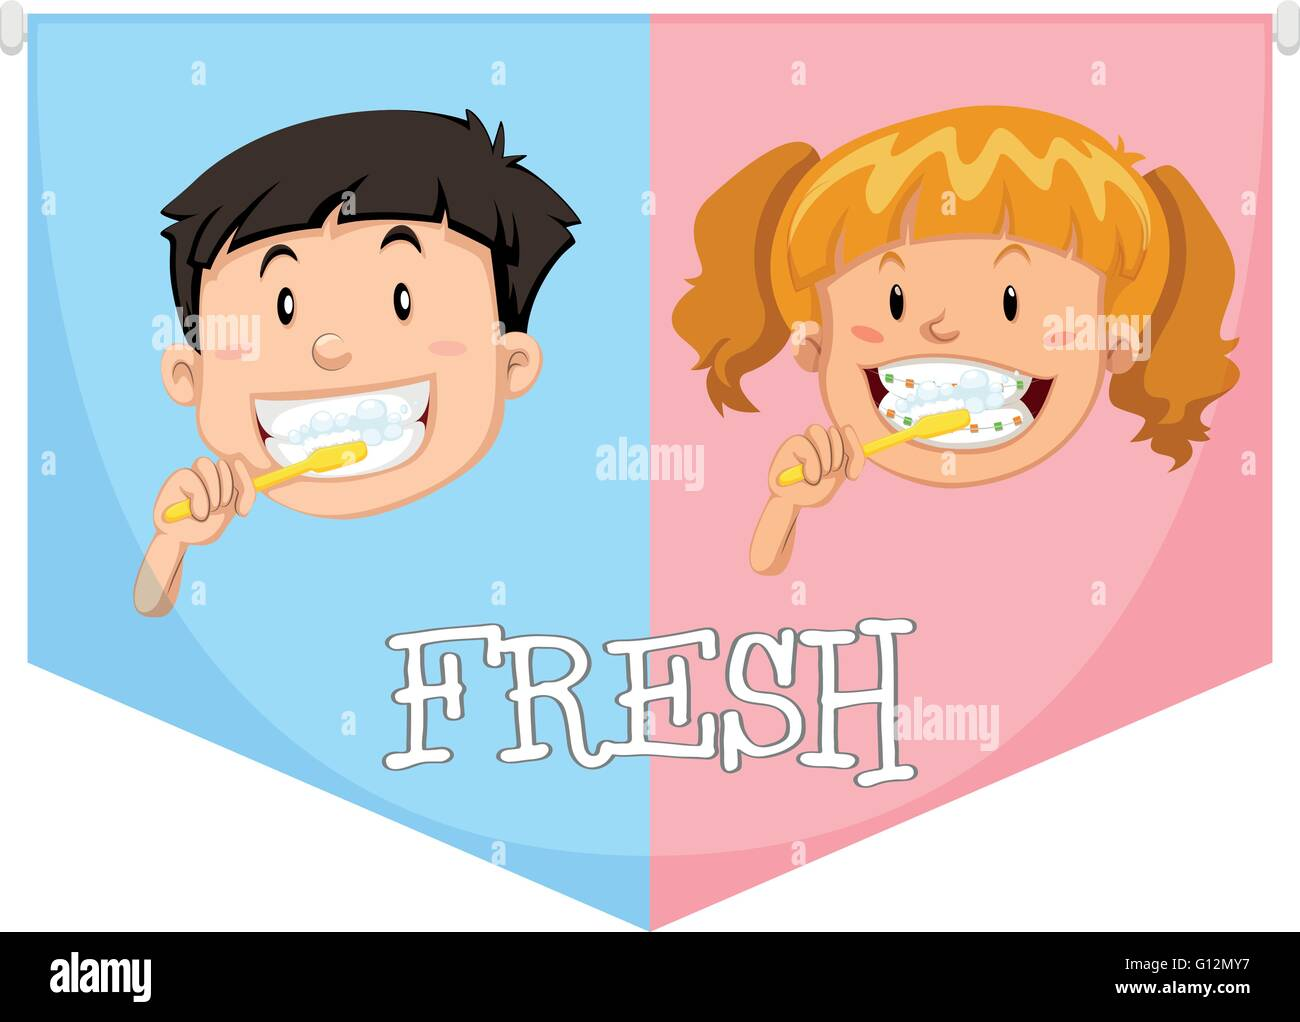 Boy and girl brushing teeth illustration Stock Vector Art     Boy and girl brushing teeth illustration